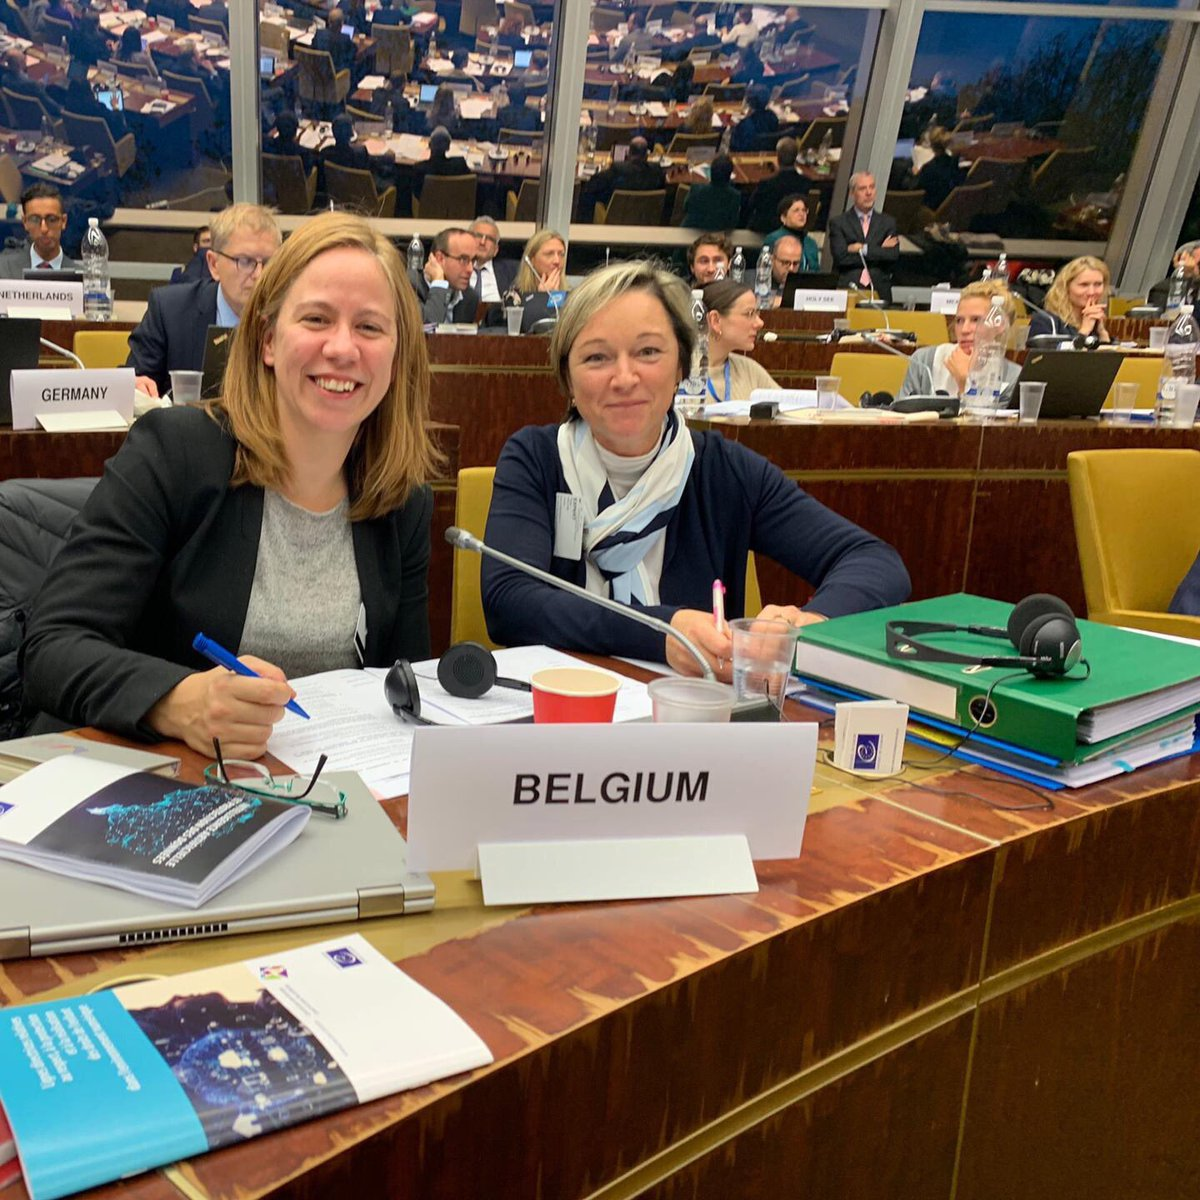 test Twitter Media - Congratulations to @gregorstrojin (#Slovenia🇸🇮), newly elected President of the @coe Ad hoc Committee on #ArtificialIntelligence and to @PeggyValcke (#Belgium🇧🇪) as Vice-President! ℹ️ https://t.co/FKflLJuWl3 #COE4AI #CAHAI https://t.co/TVSkRH0Xbx